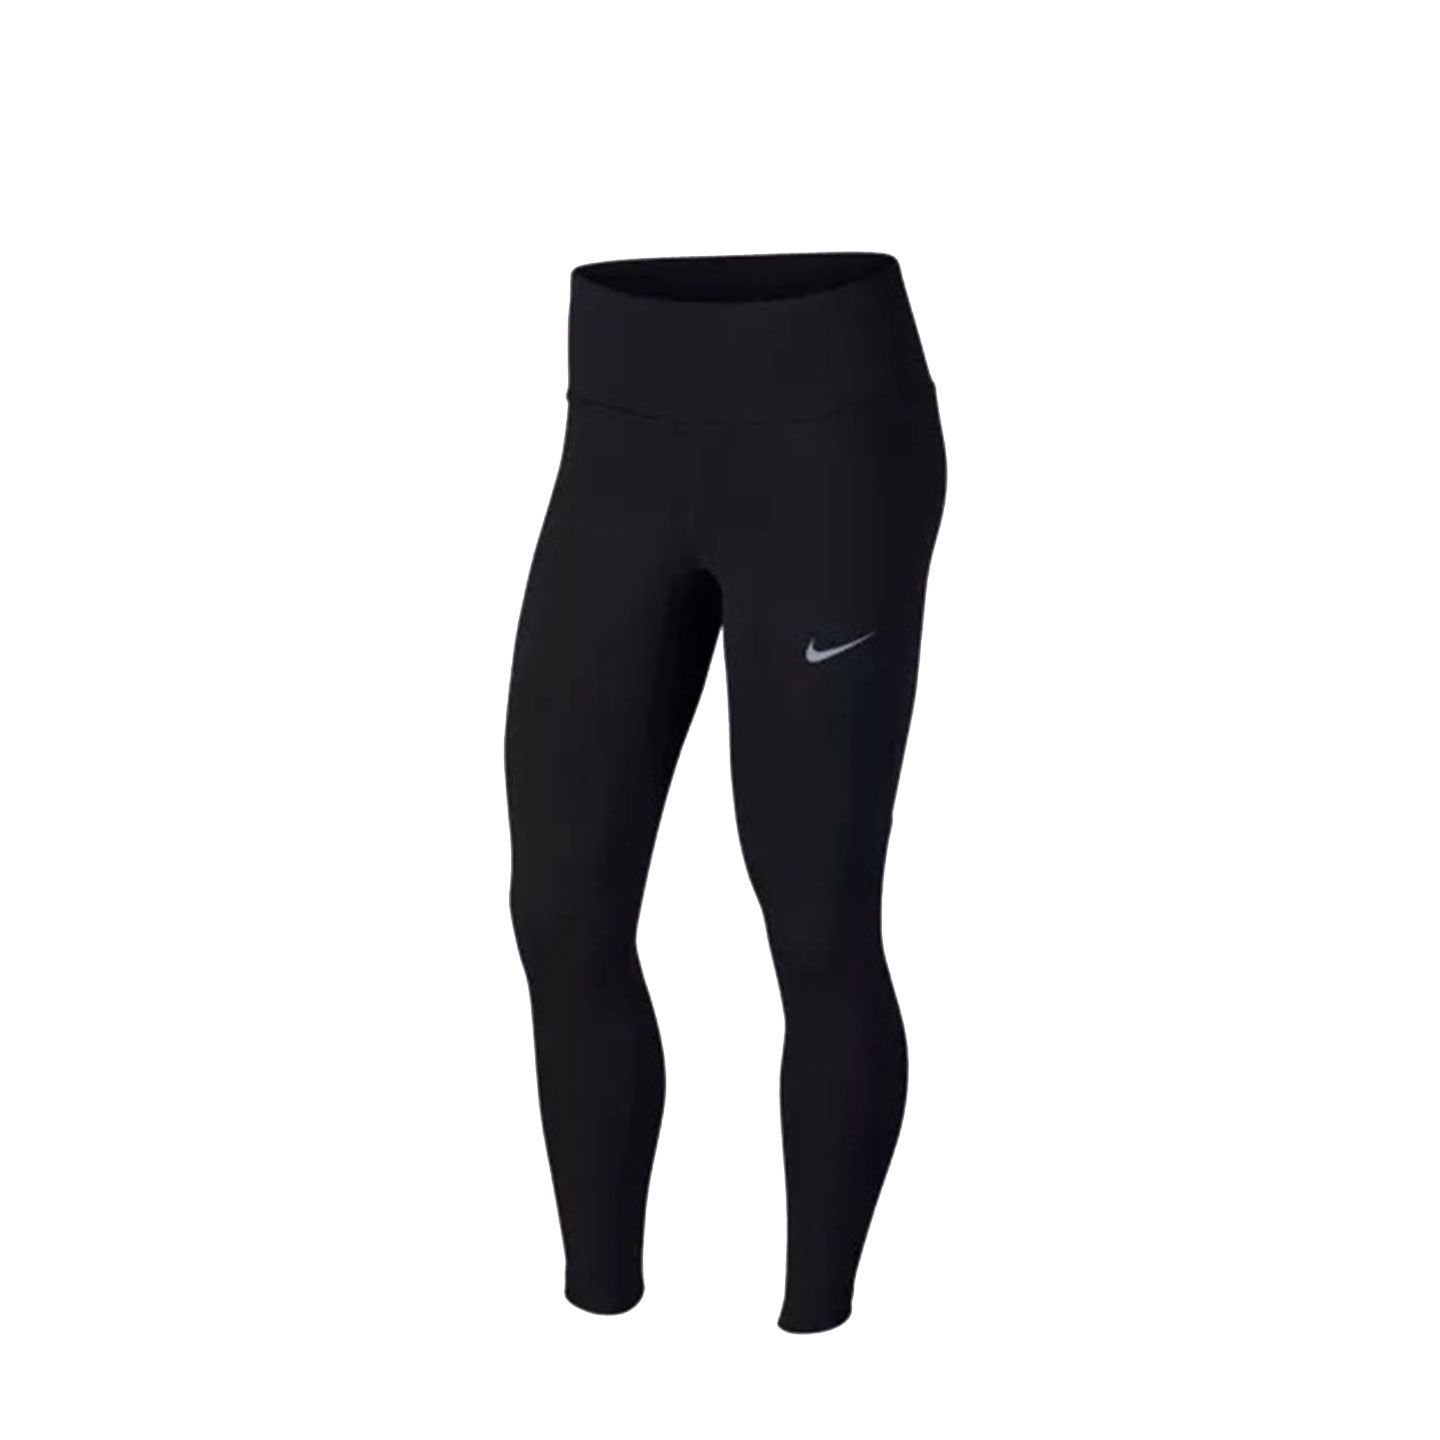 Best Nike Gym Leggings